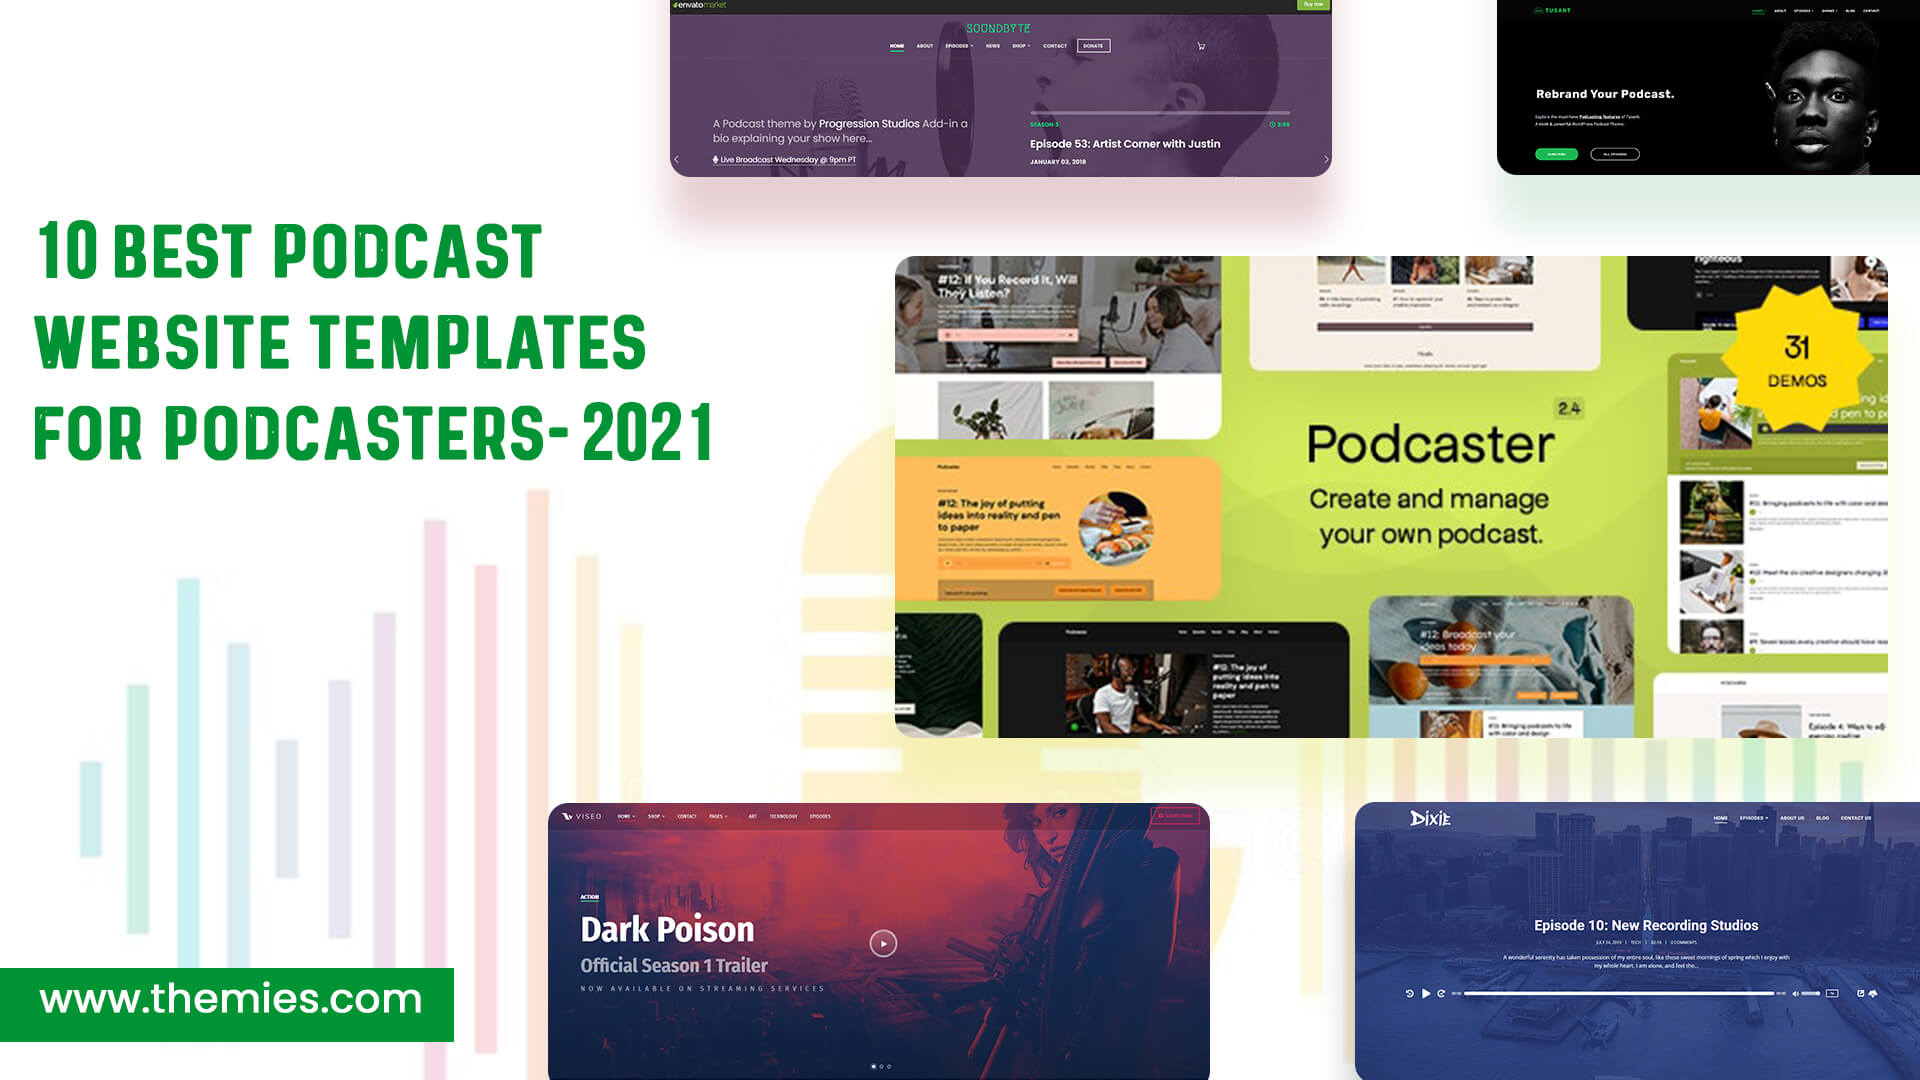 10 Best Podcast Website Templates for Podcasters [2021] - Themeies